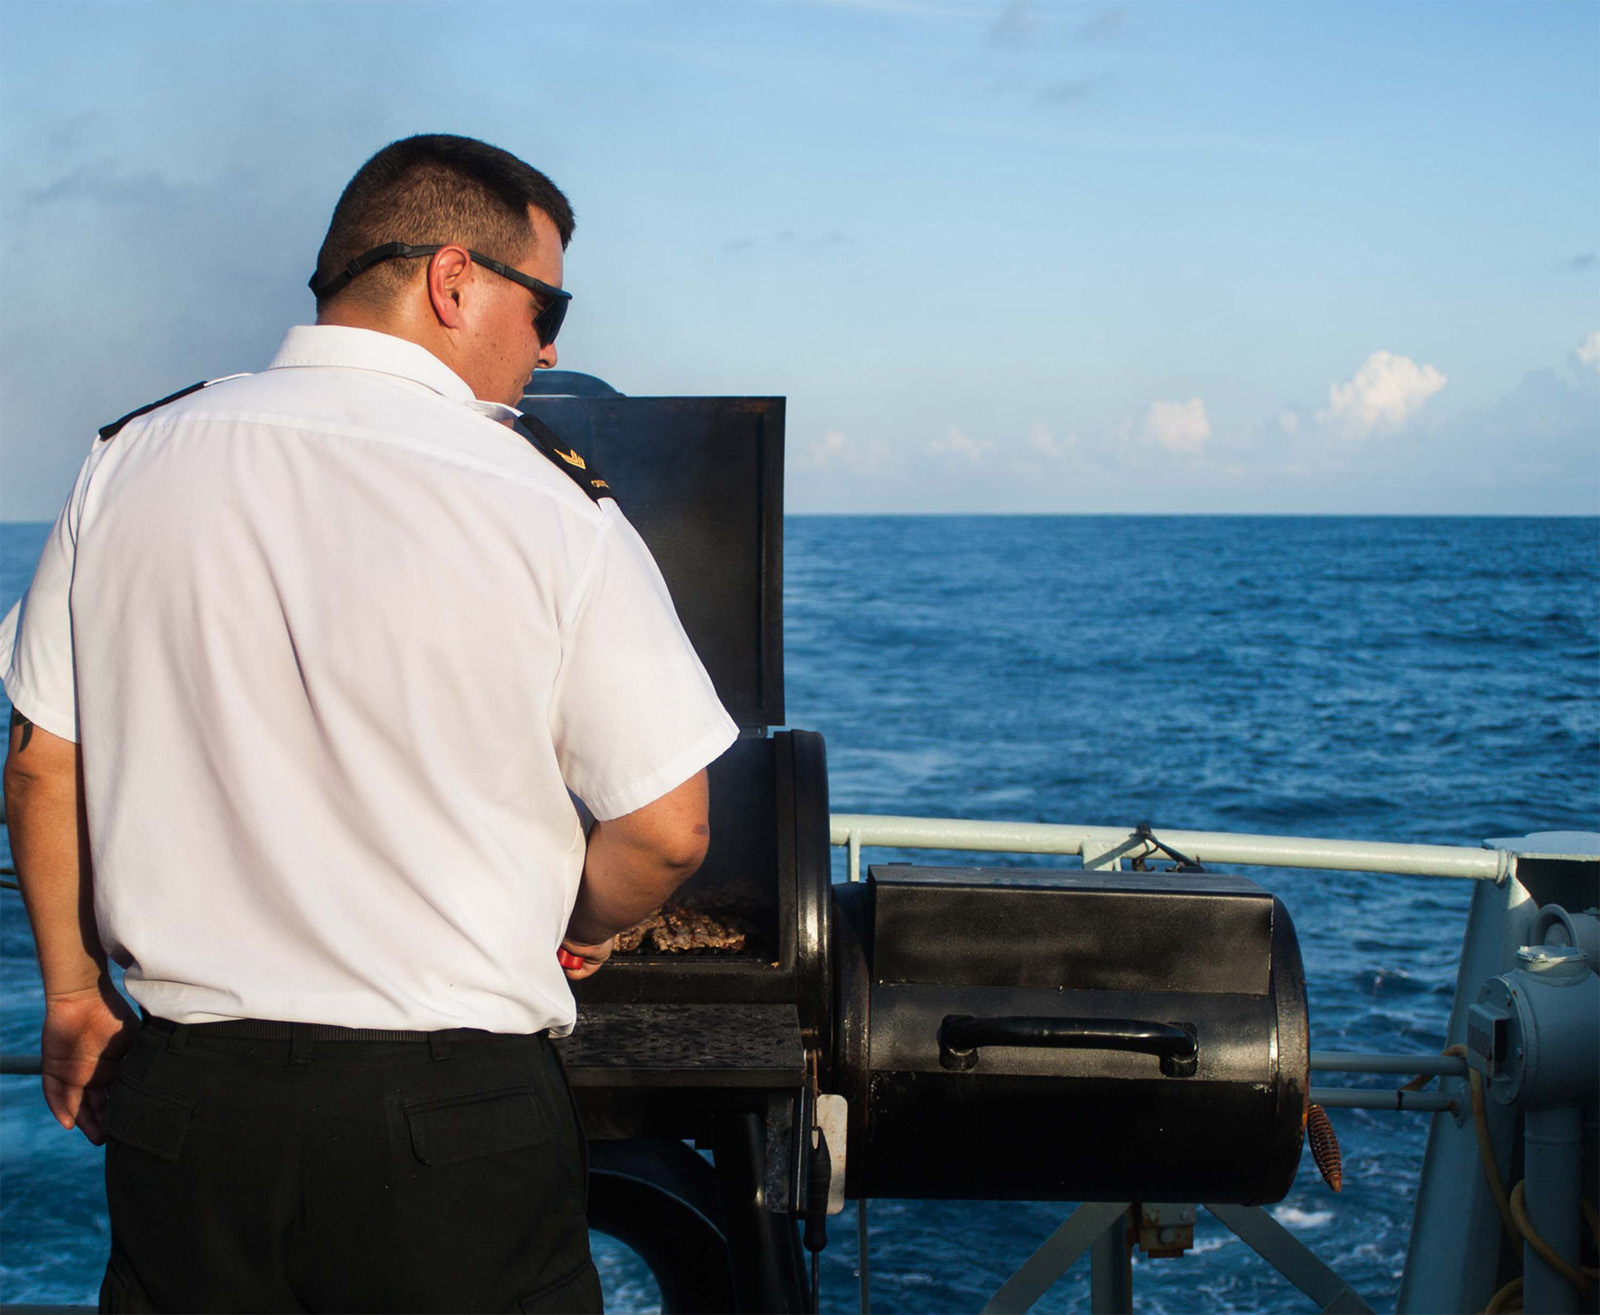 Leading Seaman Zachery Warwick, chief cook aboard HMCS Brandon, prepares a barbecue for the crew.